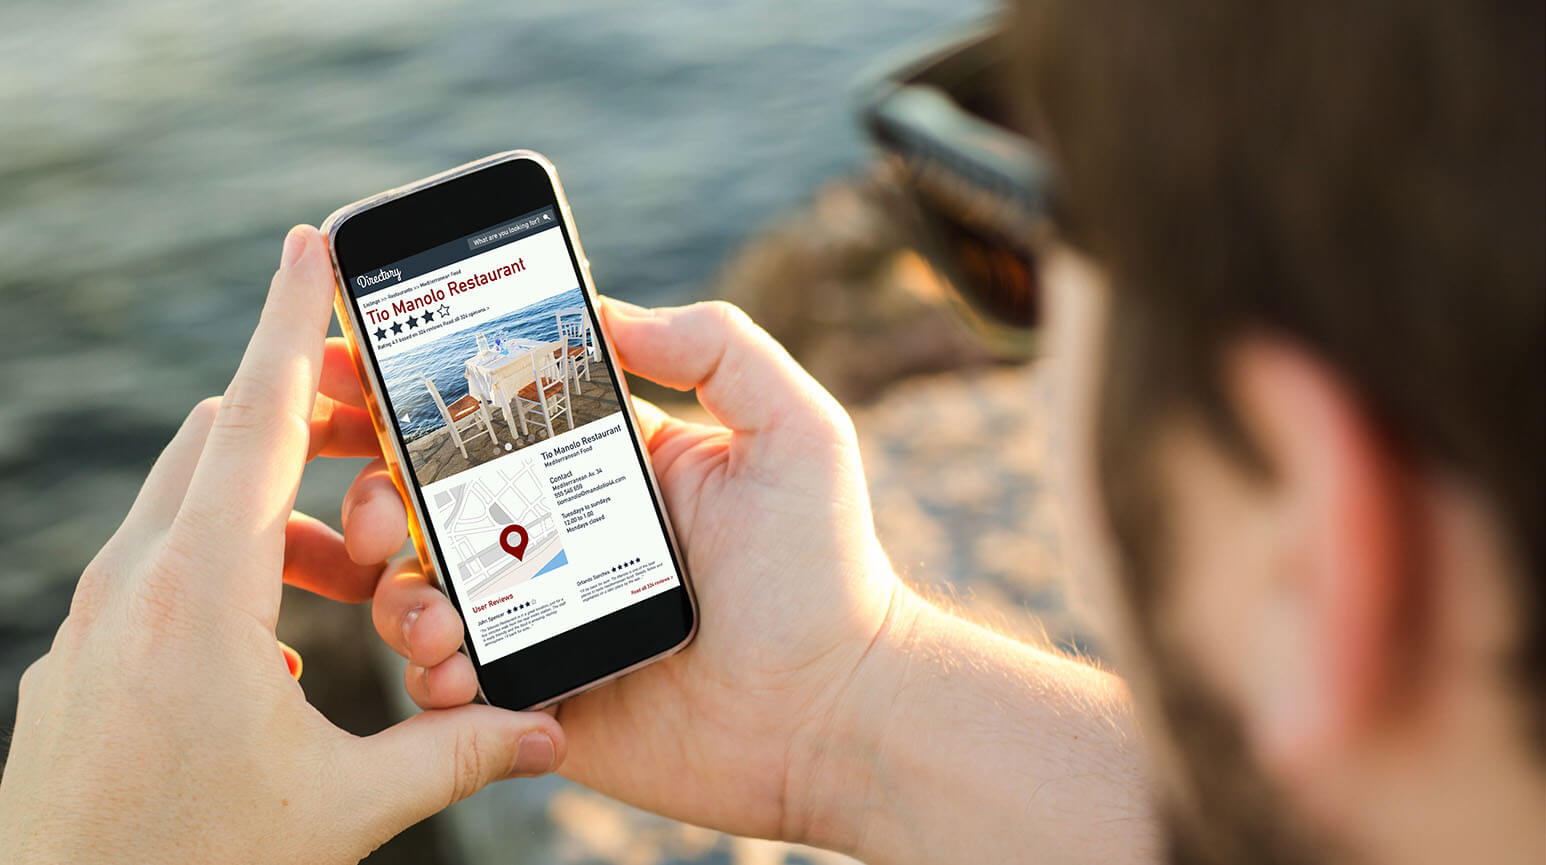 Make sure that your restaurant is listed on apps (Yelp, Trip Advisor) so that people will see you when they're looking for a place to eat.